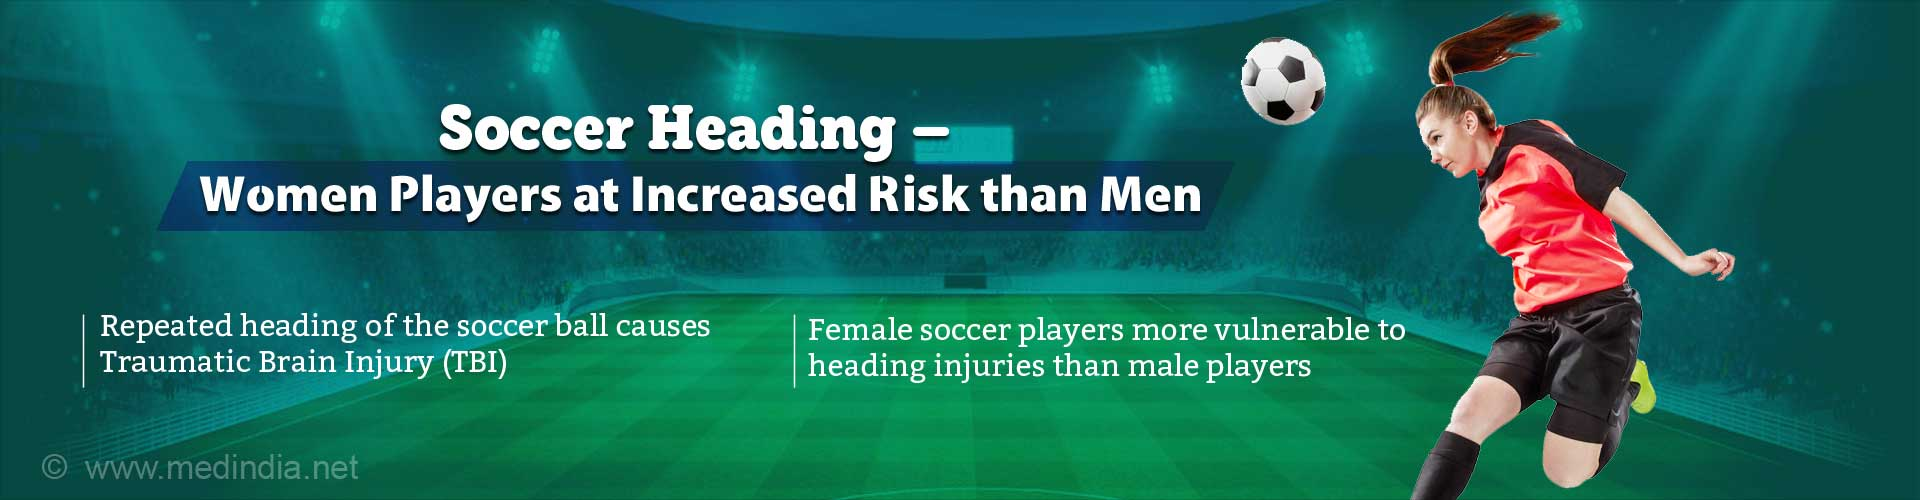 Soccer Heading Puts More Women at Risk for Brain Injury Than Men